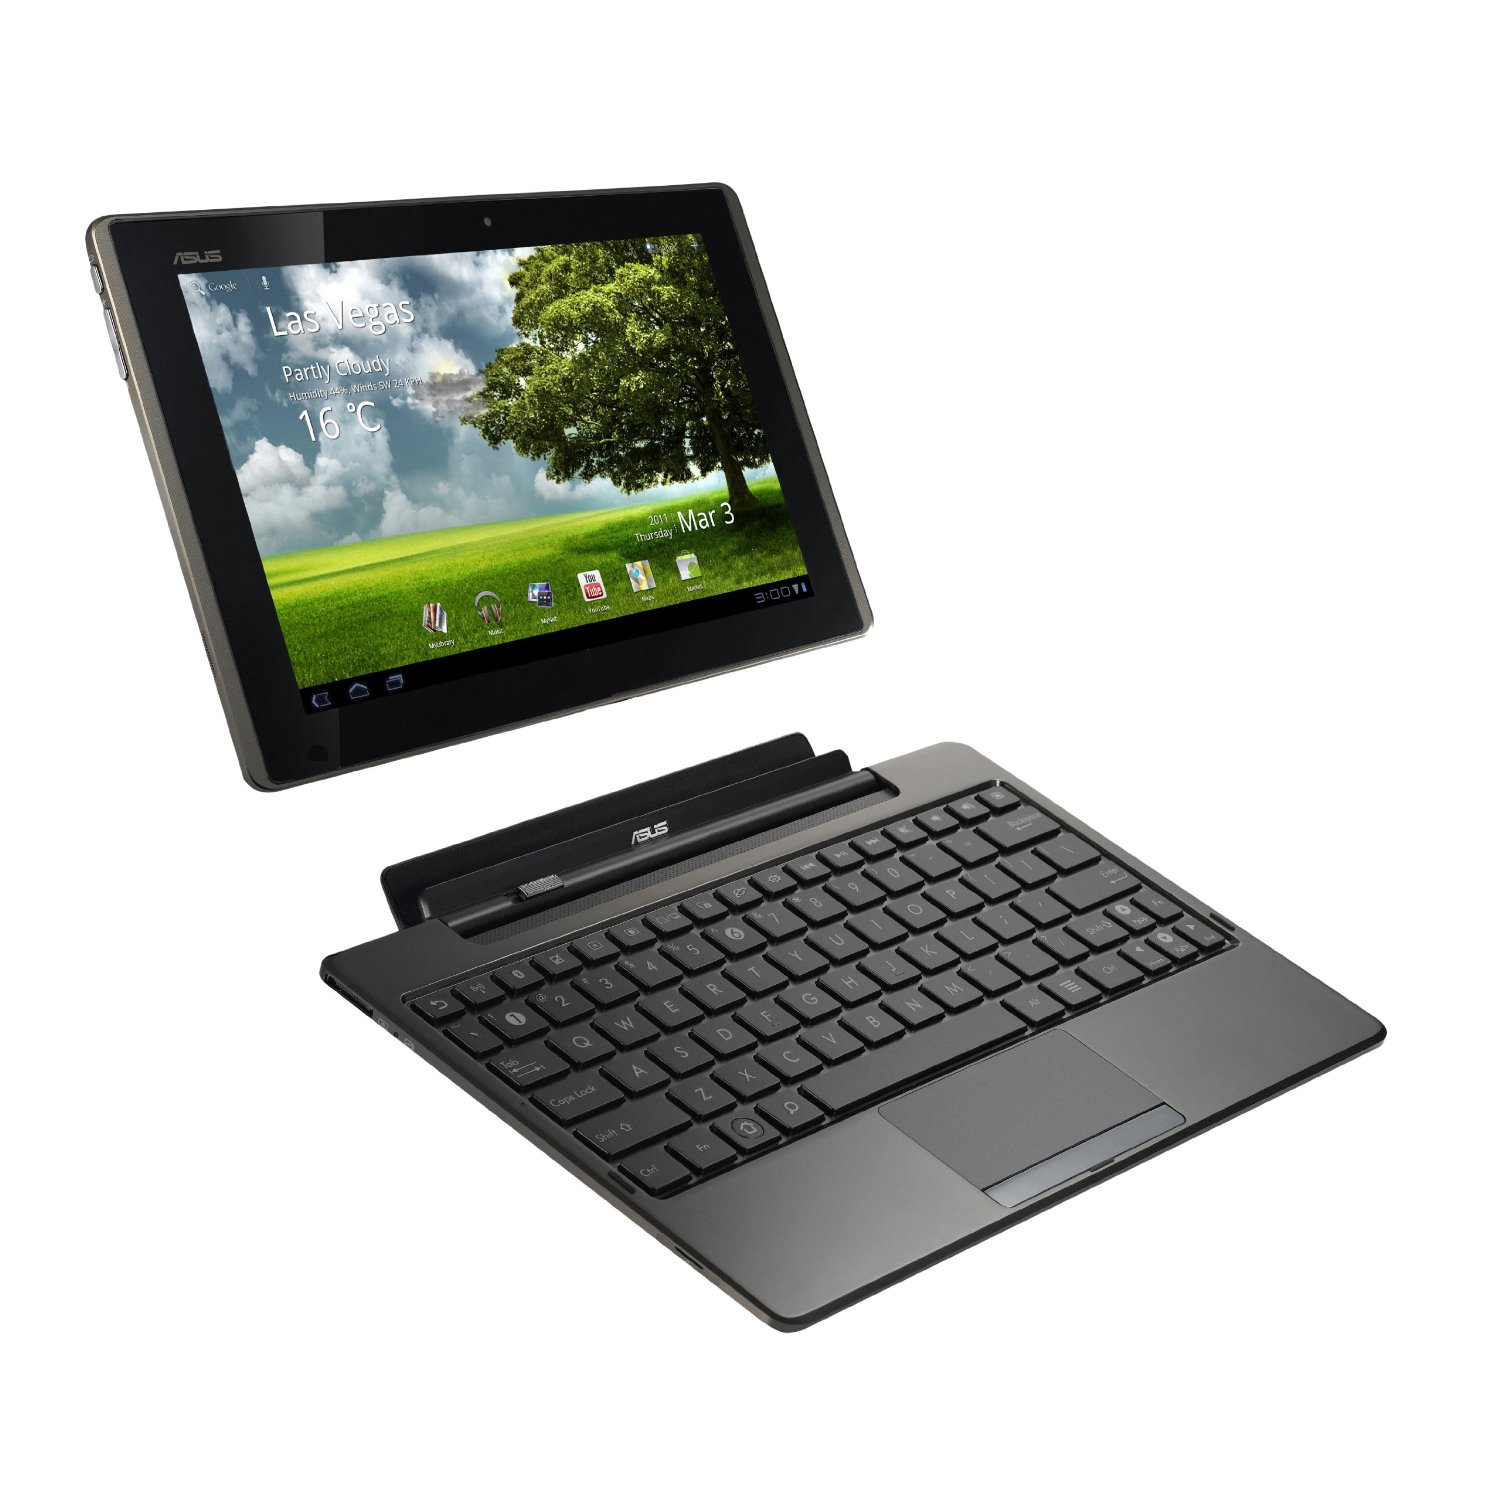 new android 3 0 tablet pc asus eee pad uk release date. Black Bedroom Furniture Sets. Home Design Ideas